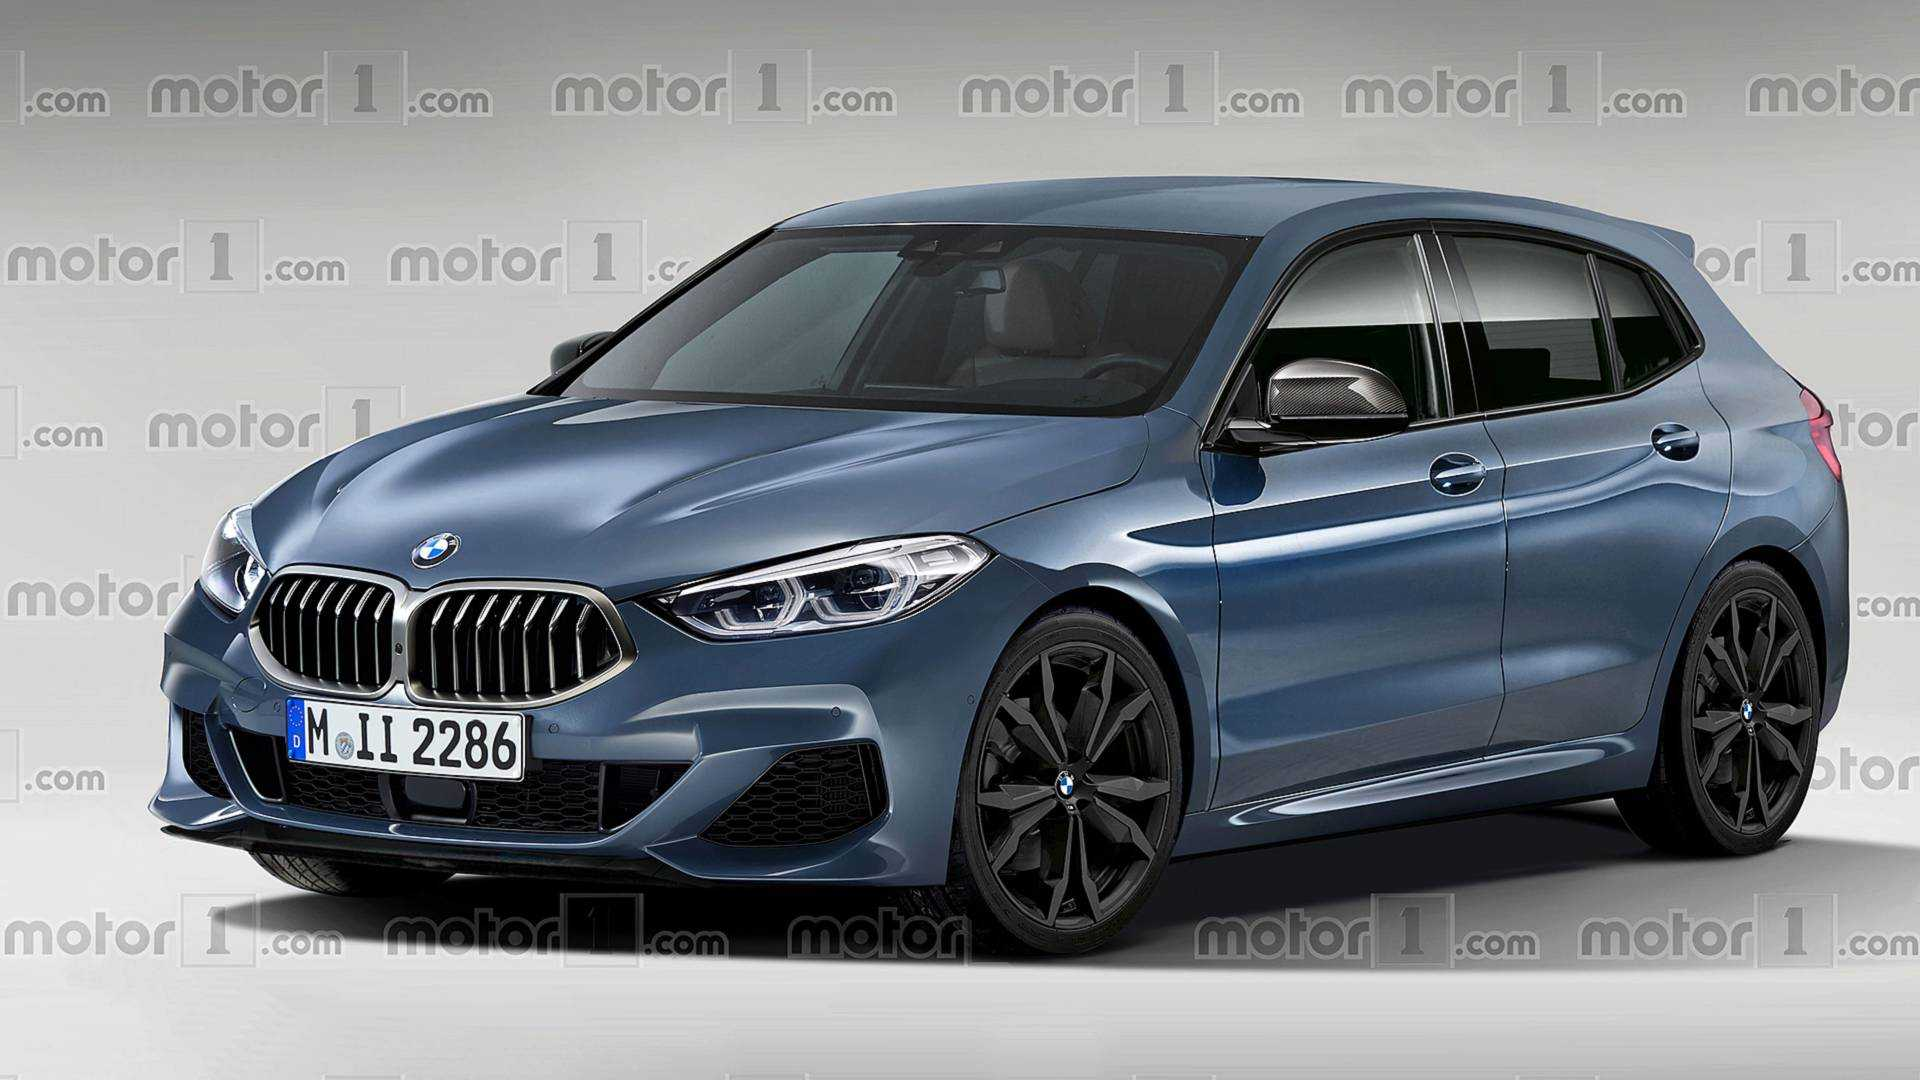 27 Best Review Best Bmw Upcoming Cars 2019 Rumors Review with Best Bmw Upcoming Cars 2019 Rumors